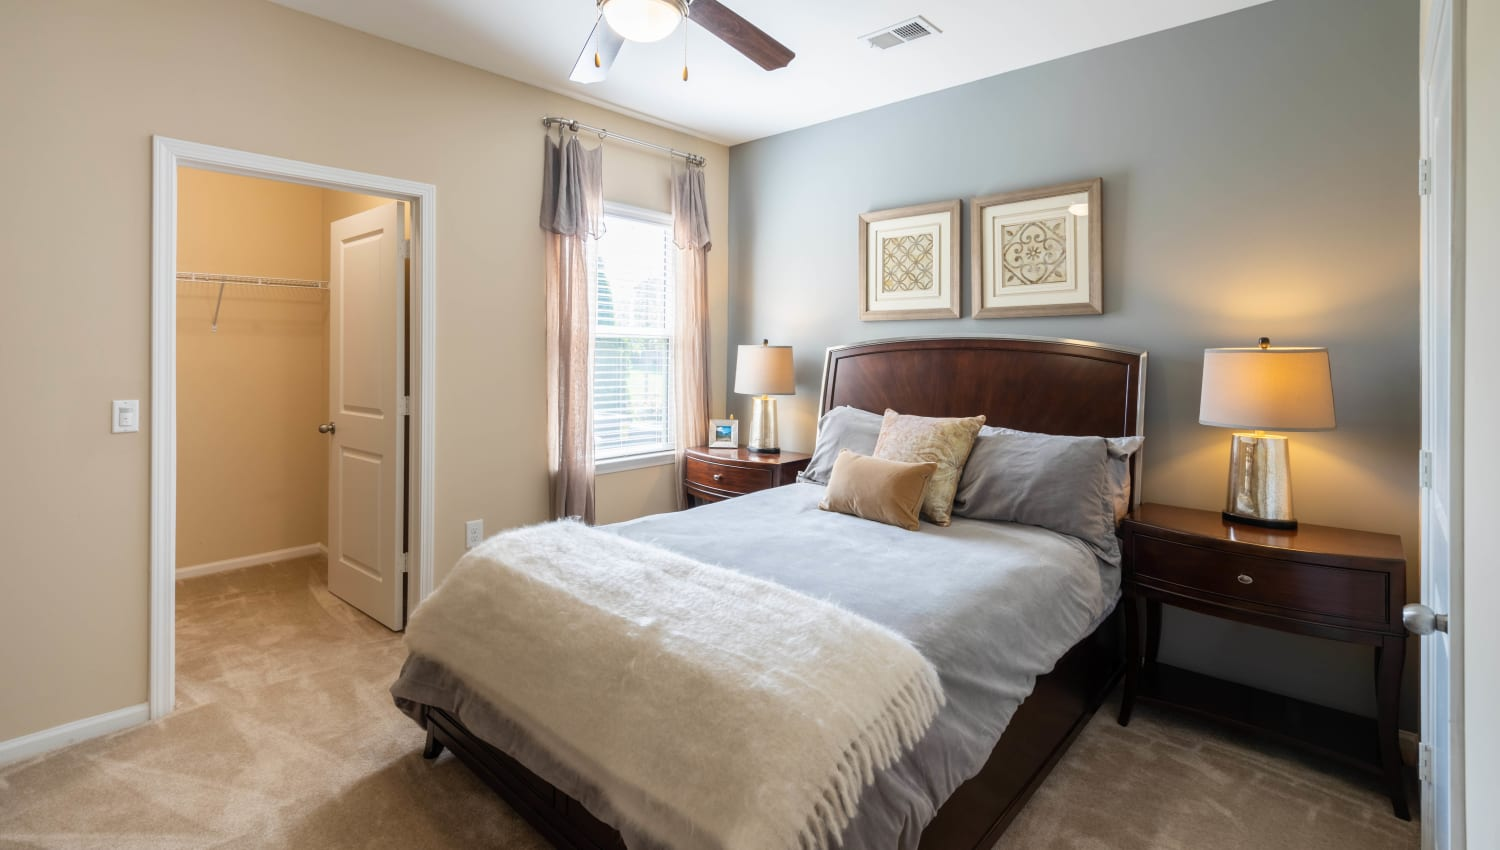 Luxuriously furnished model home's master bedroom with a large walk-in closet at Legends at White Oak in Ooltewah, Tennessee